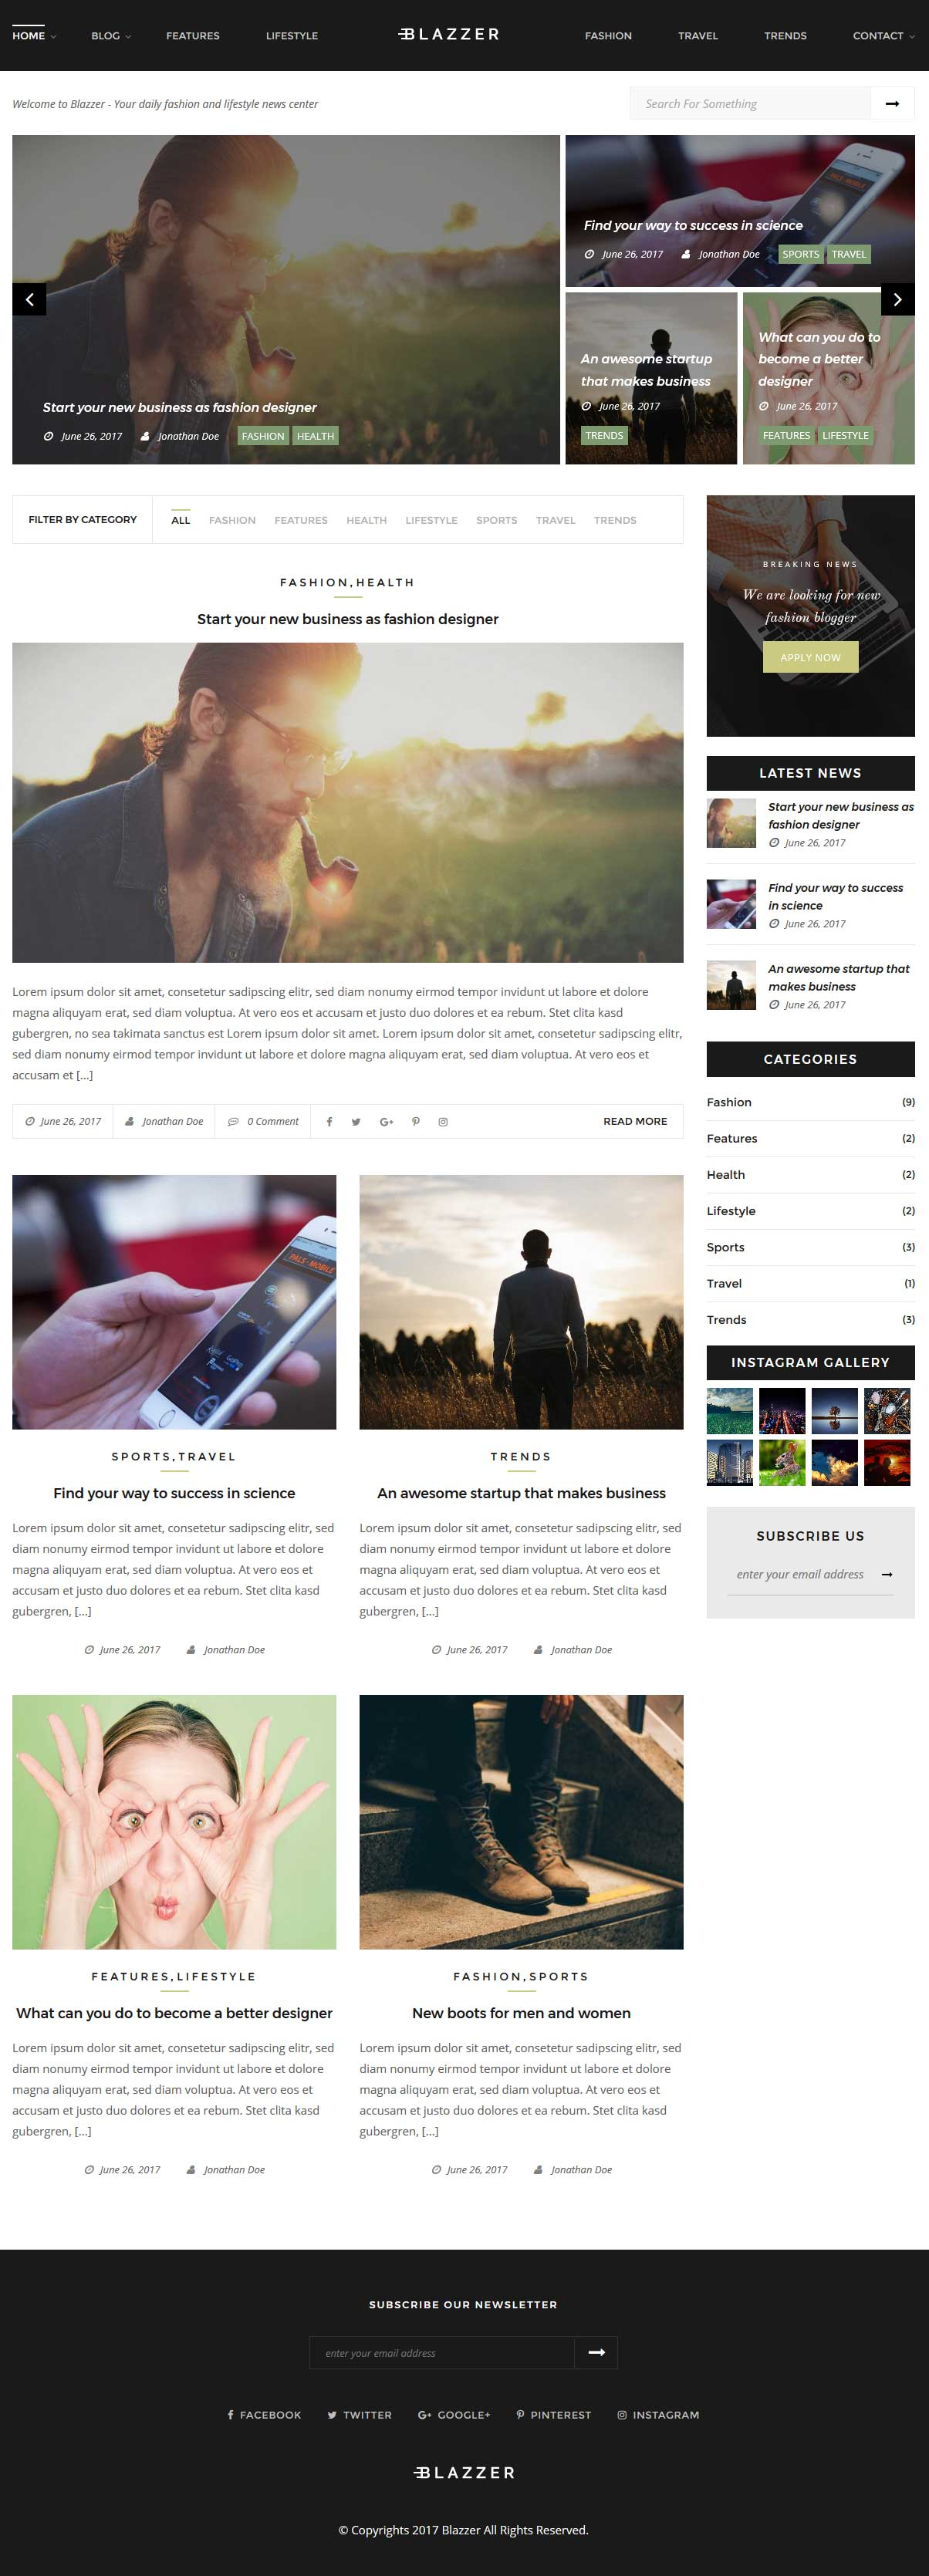 Blazzer - Personal/Fashion Blog WordPress Theme